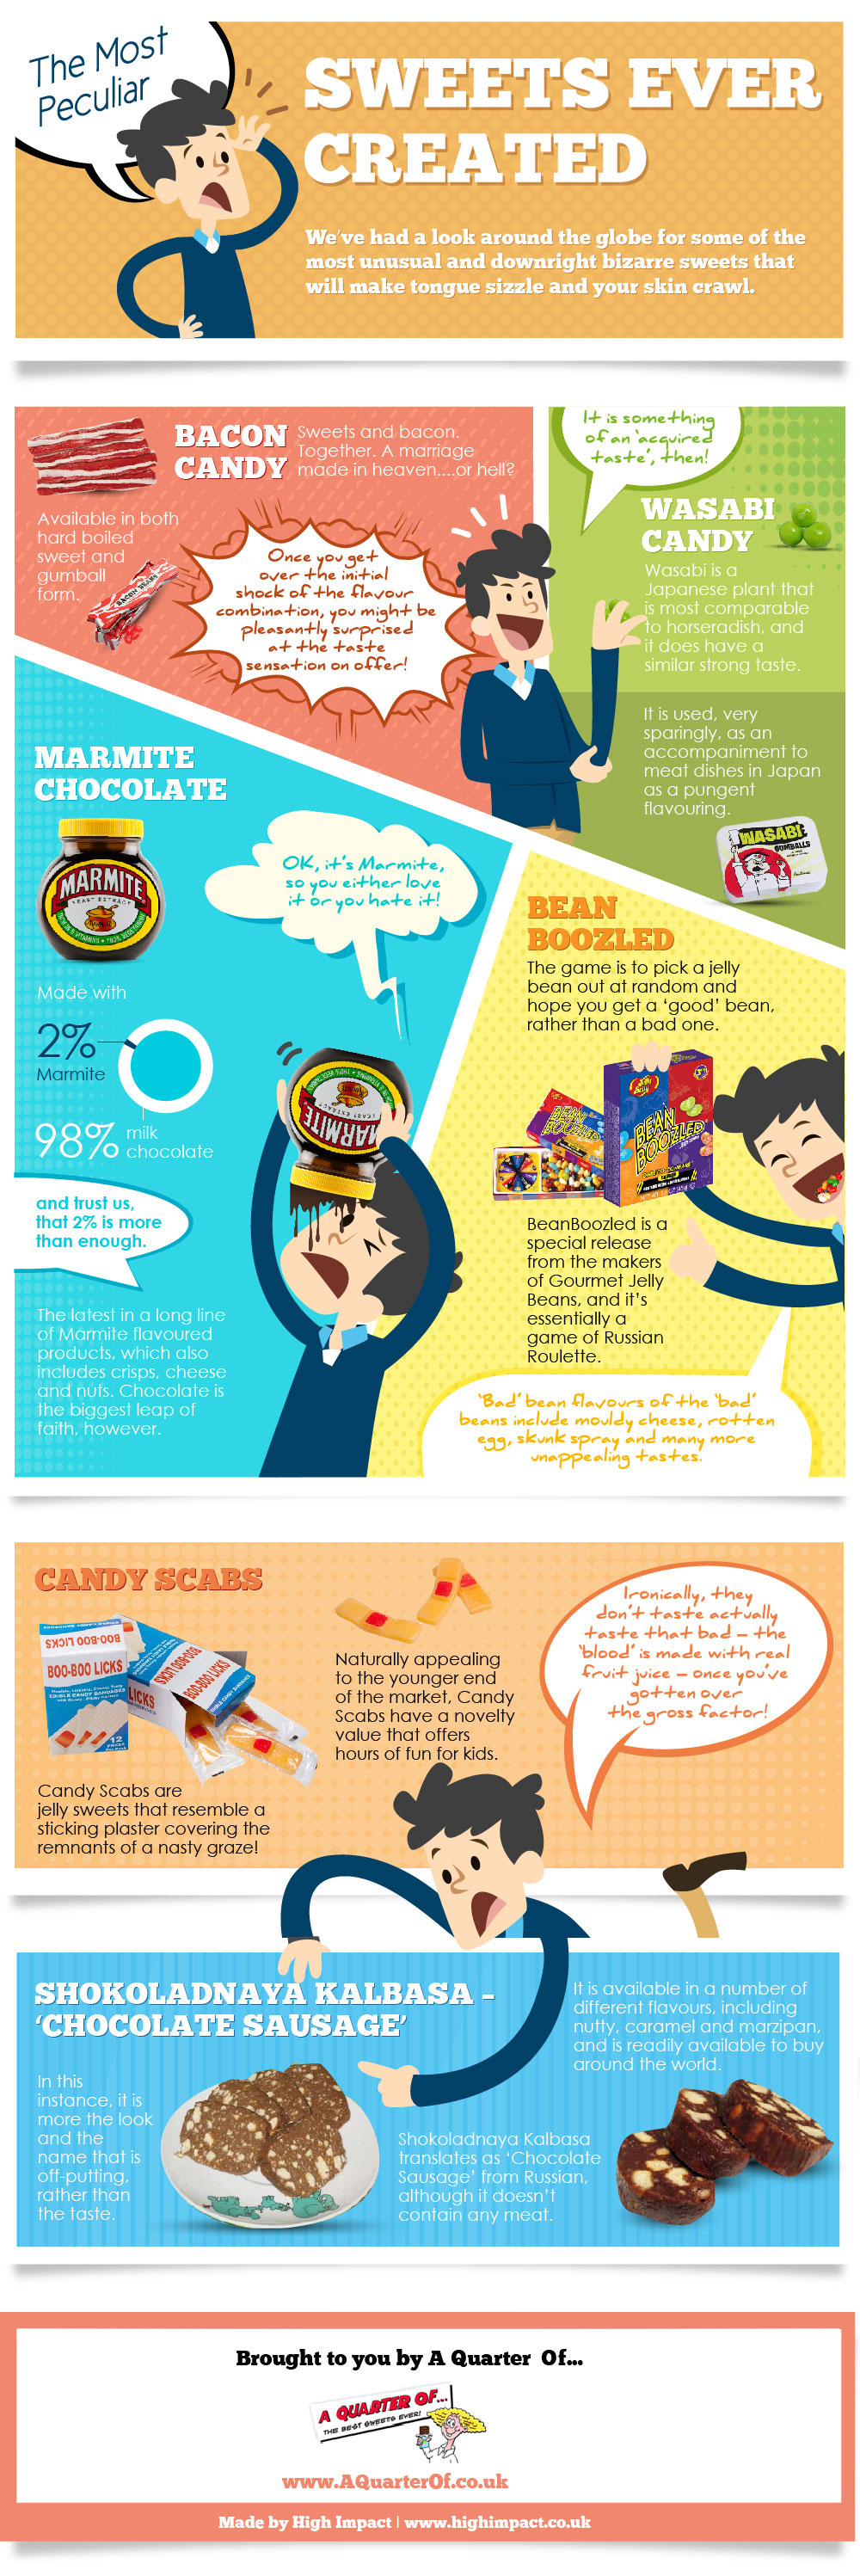 most peculiar sweets infographic